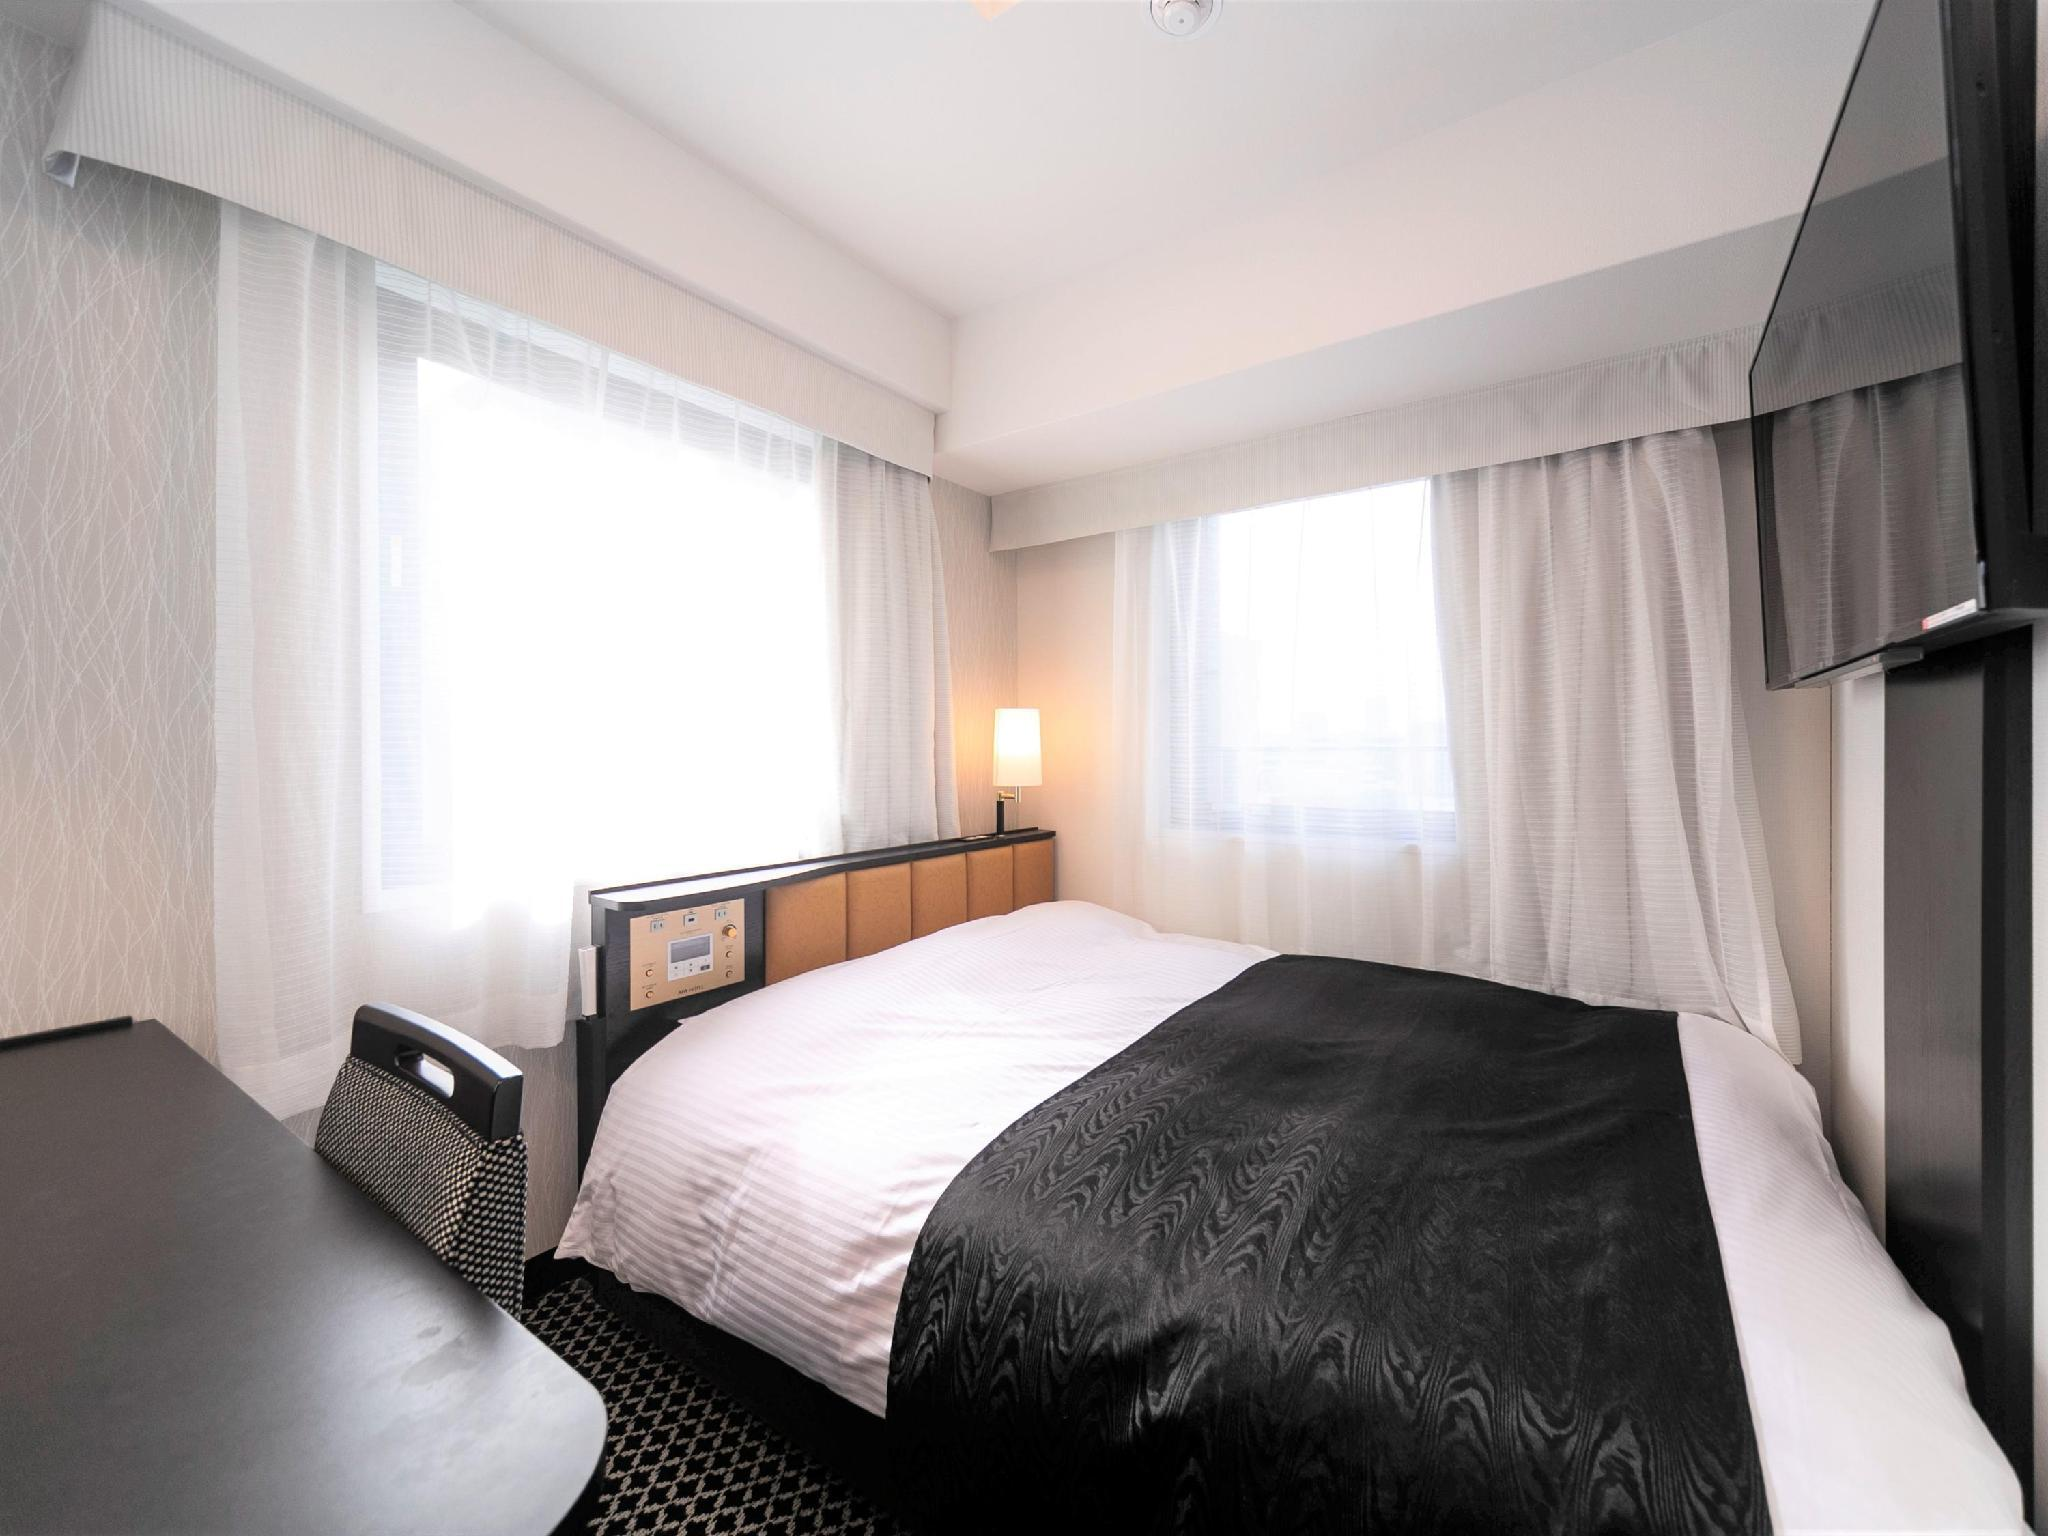 Day Use - Double Room - Non Smoking Max 6 Hours Between 14:00 and 20:00 (6 hour use Only)